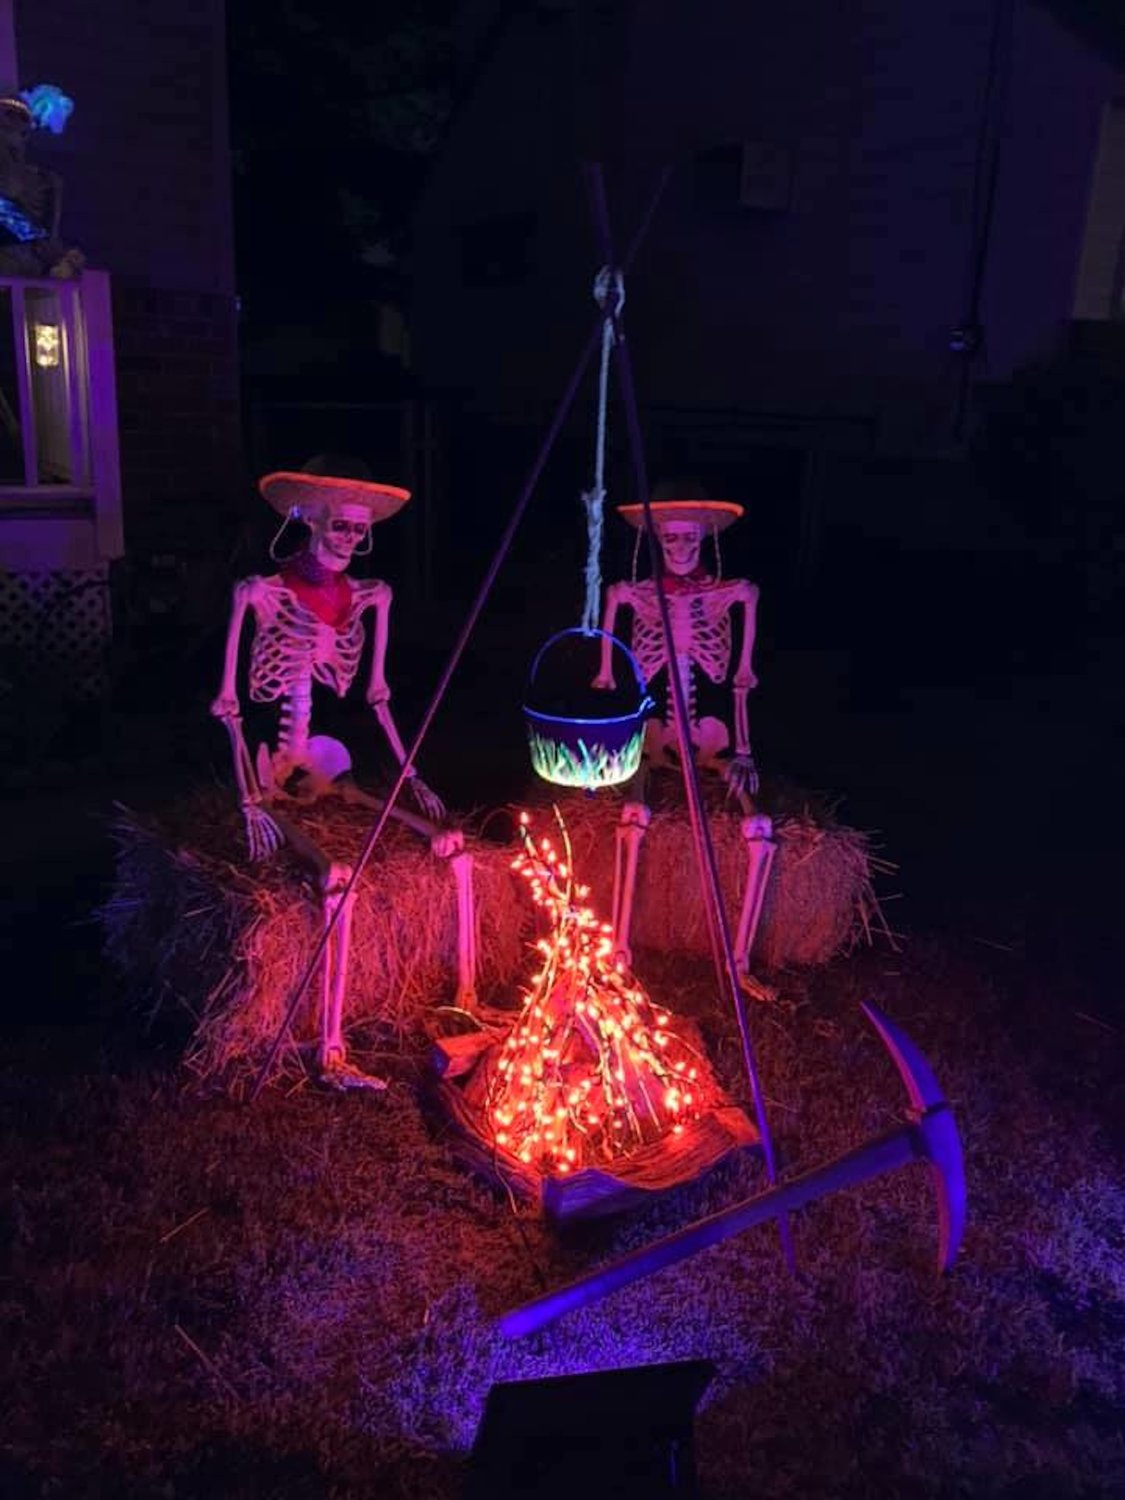 Massie's yard also features a pair of skeletons sat by the campfire to exchange spooky ghost stories.